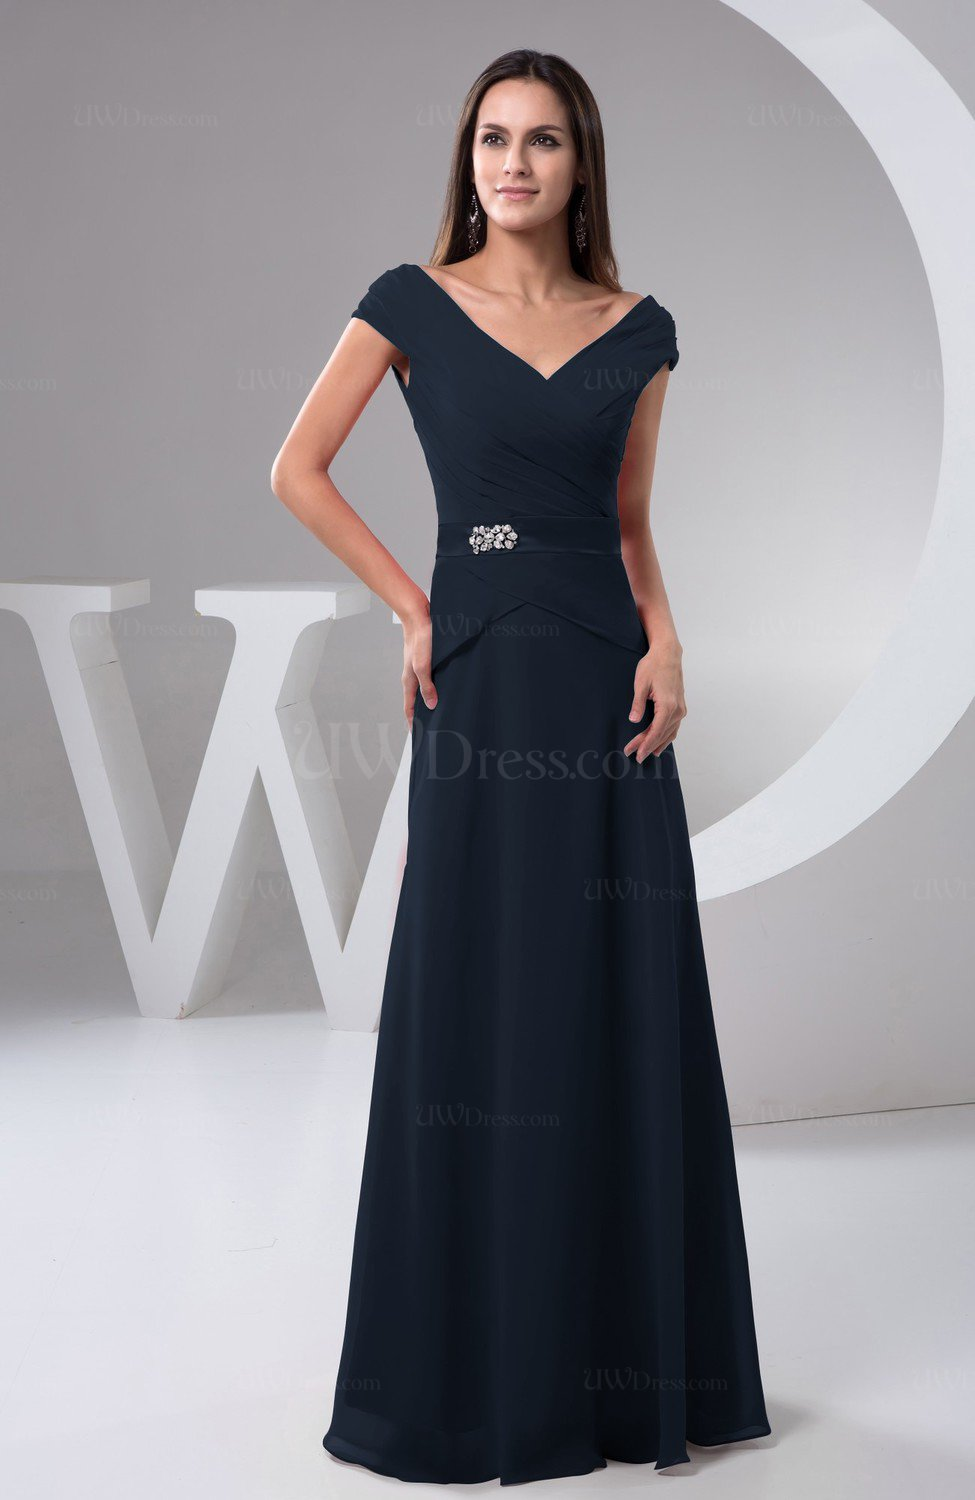 62fd4aae5bcf86 Navy Blue Chiffon Bridesmaid Dress with Sleeves Short Sleeve Outdoor Chic  Autumn (Style D00792)